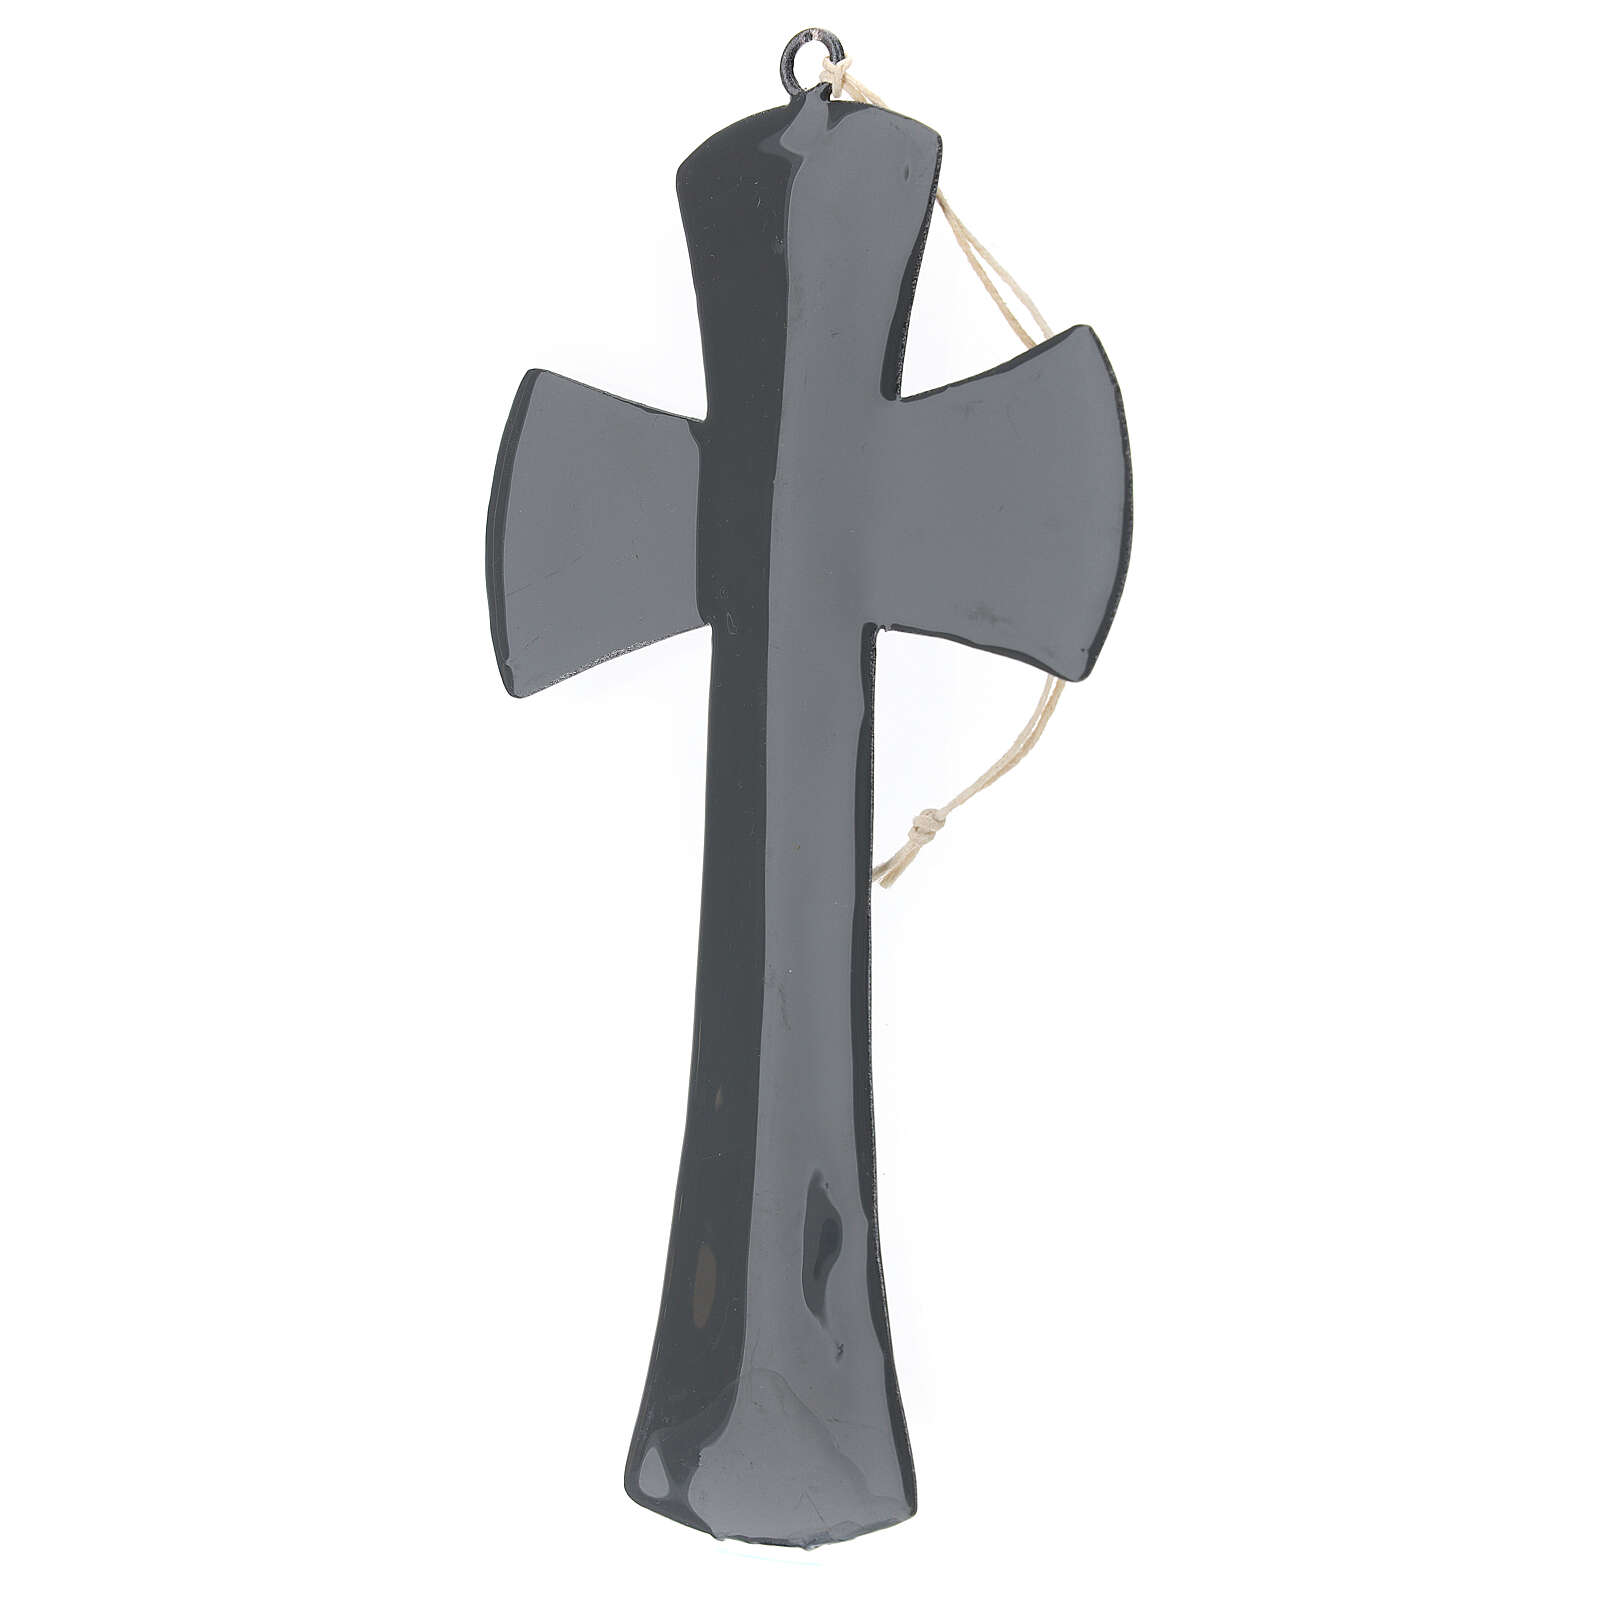 Wall cross 8 in gloss grey enamel 4